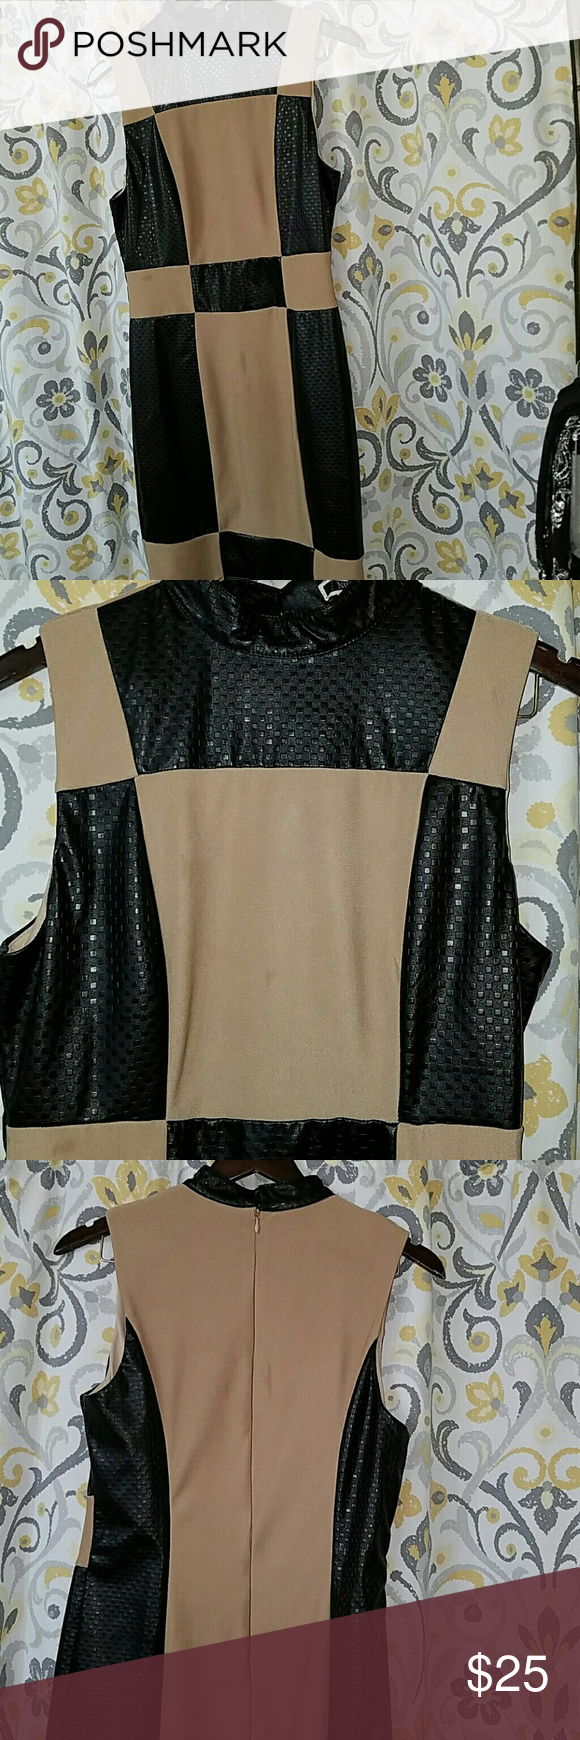 Beautiful dress! Leather like material. This dress is so pretty! Its tan & black, leather like material, fully lined. Perfect with leggings and hills. nikiBiki Dresses Midi